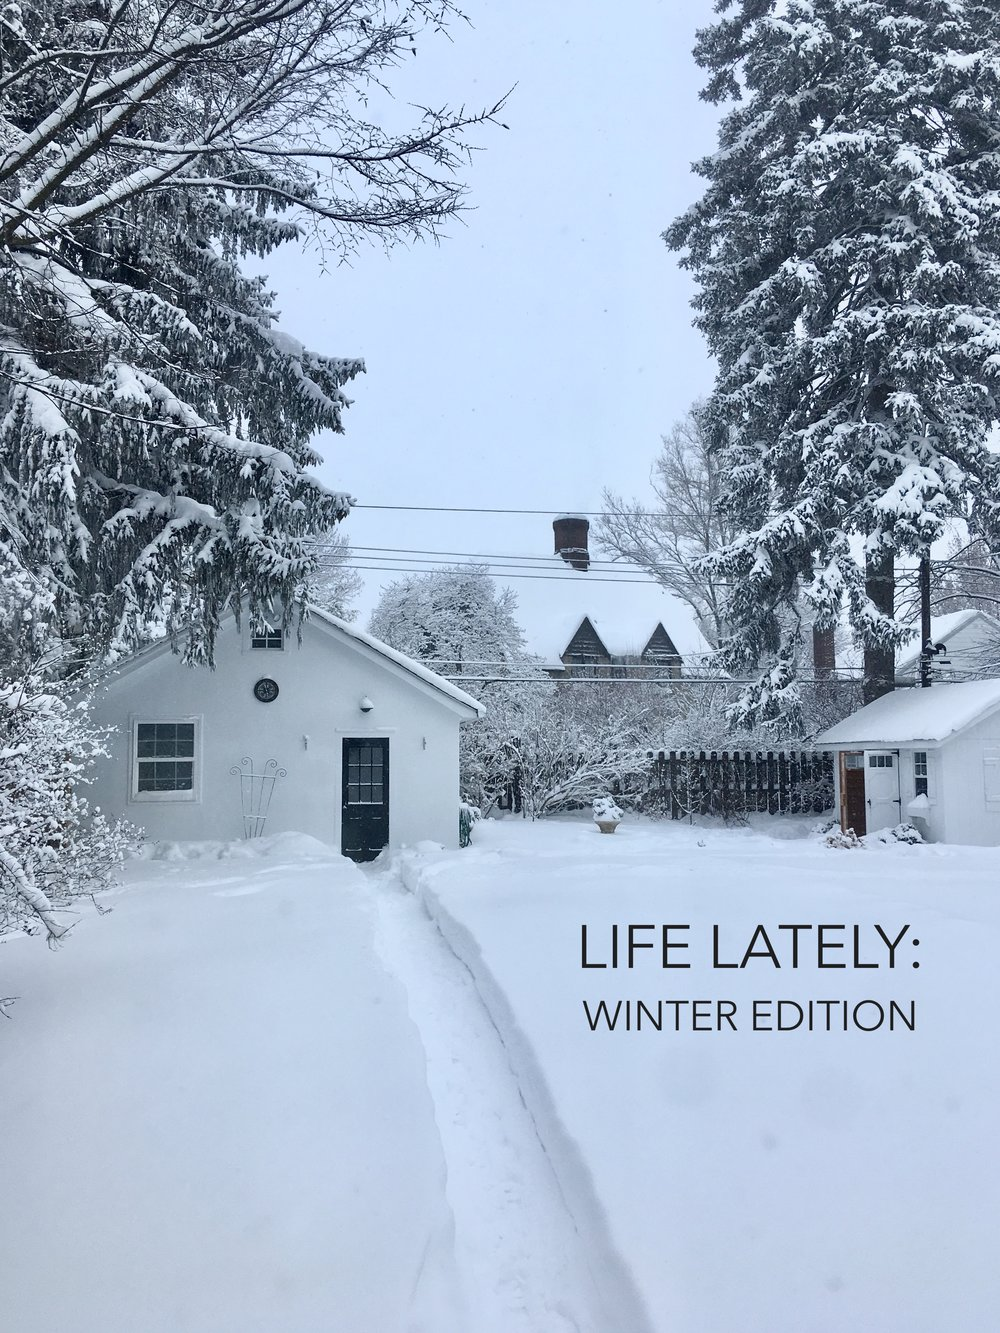 Life Lately: Winter Edition